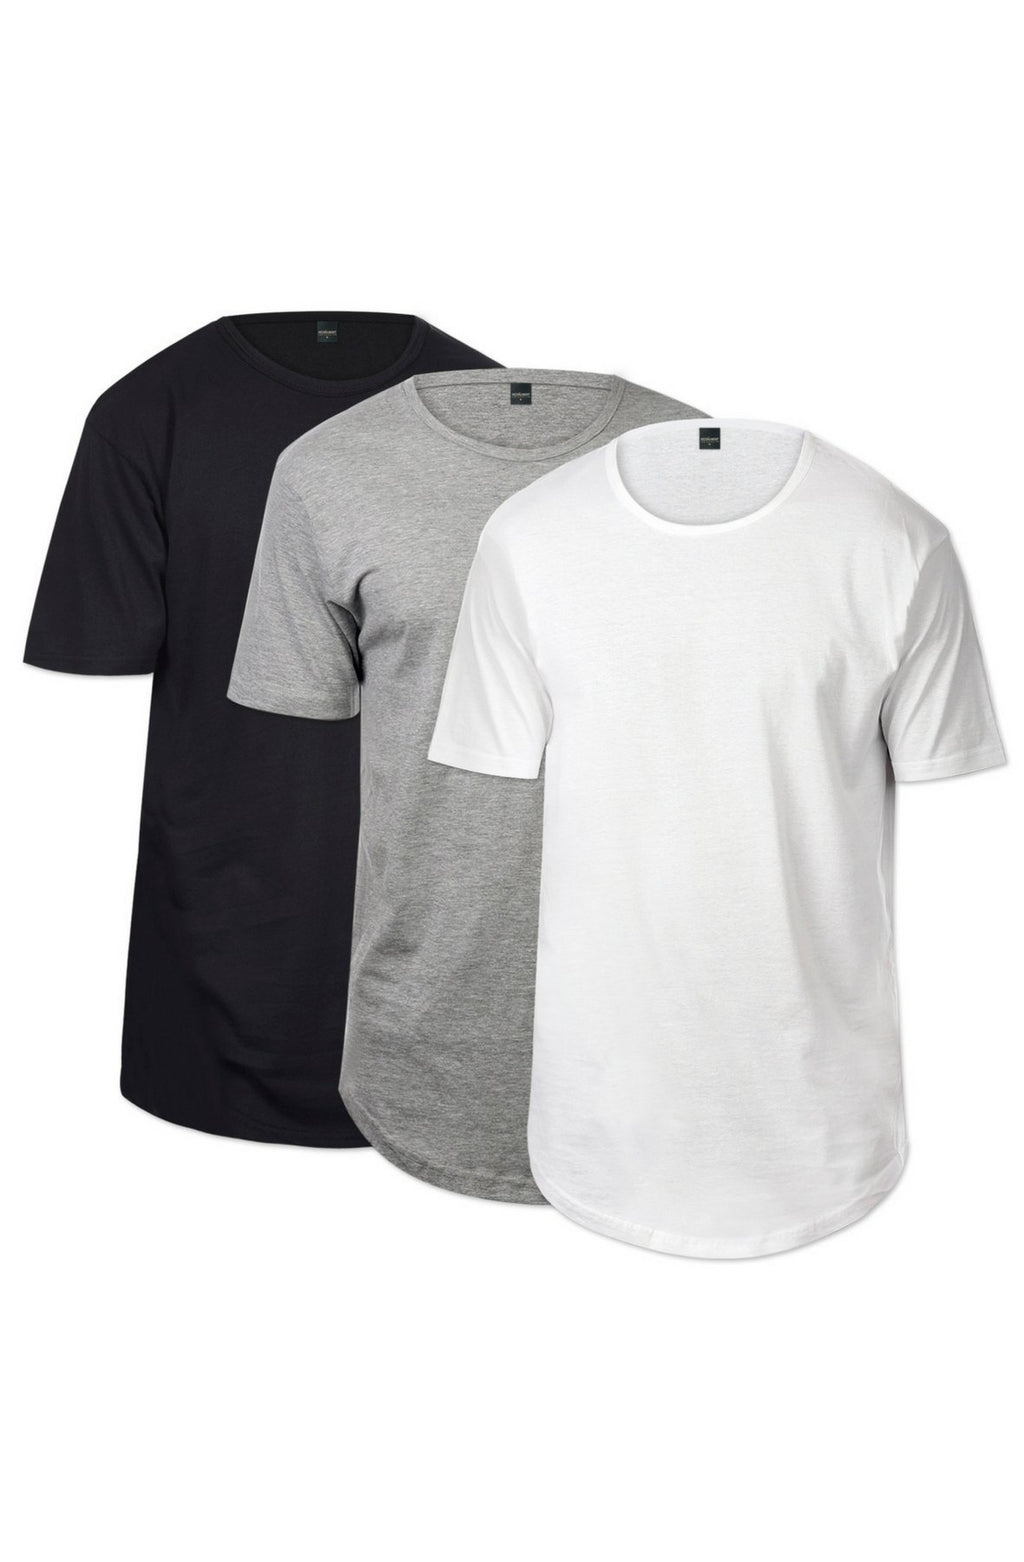 CB Tall Scallop Bottom Tee 3 Pack (Black & Heather - mroutfit